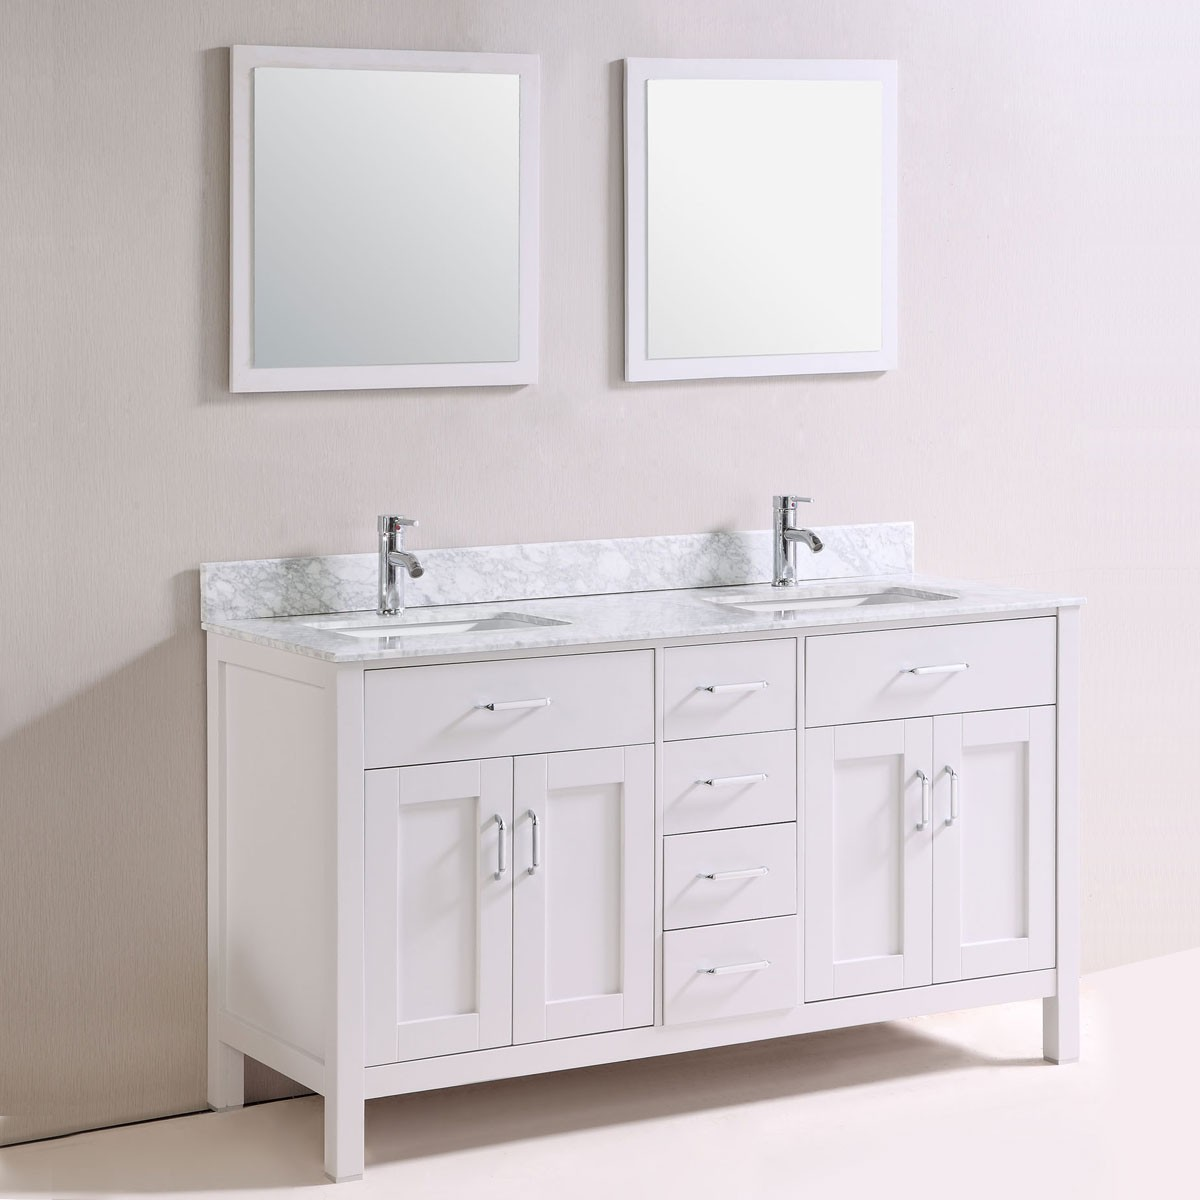 60 In. Freestanding Bathroom Vanity Set With Double Sinks And Mirrors  (DK-T9150